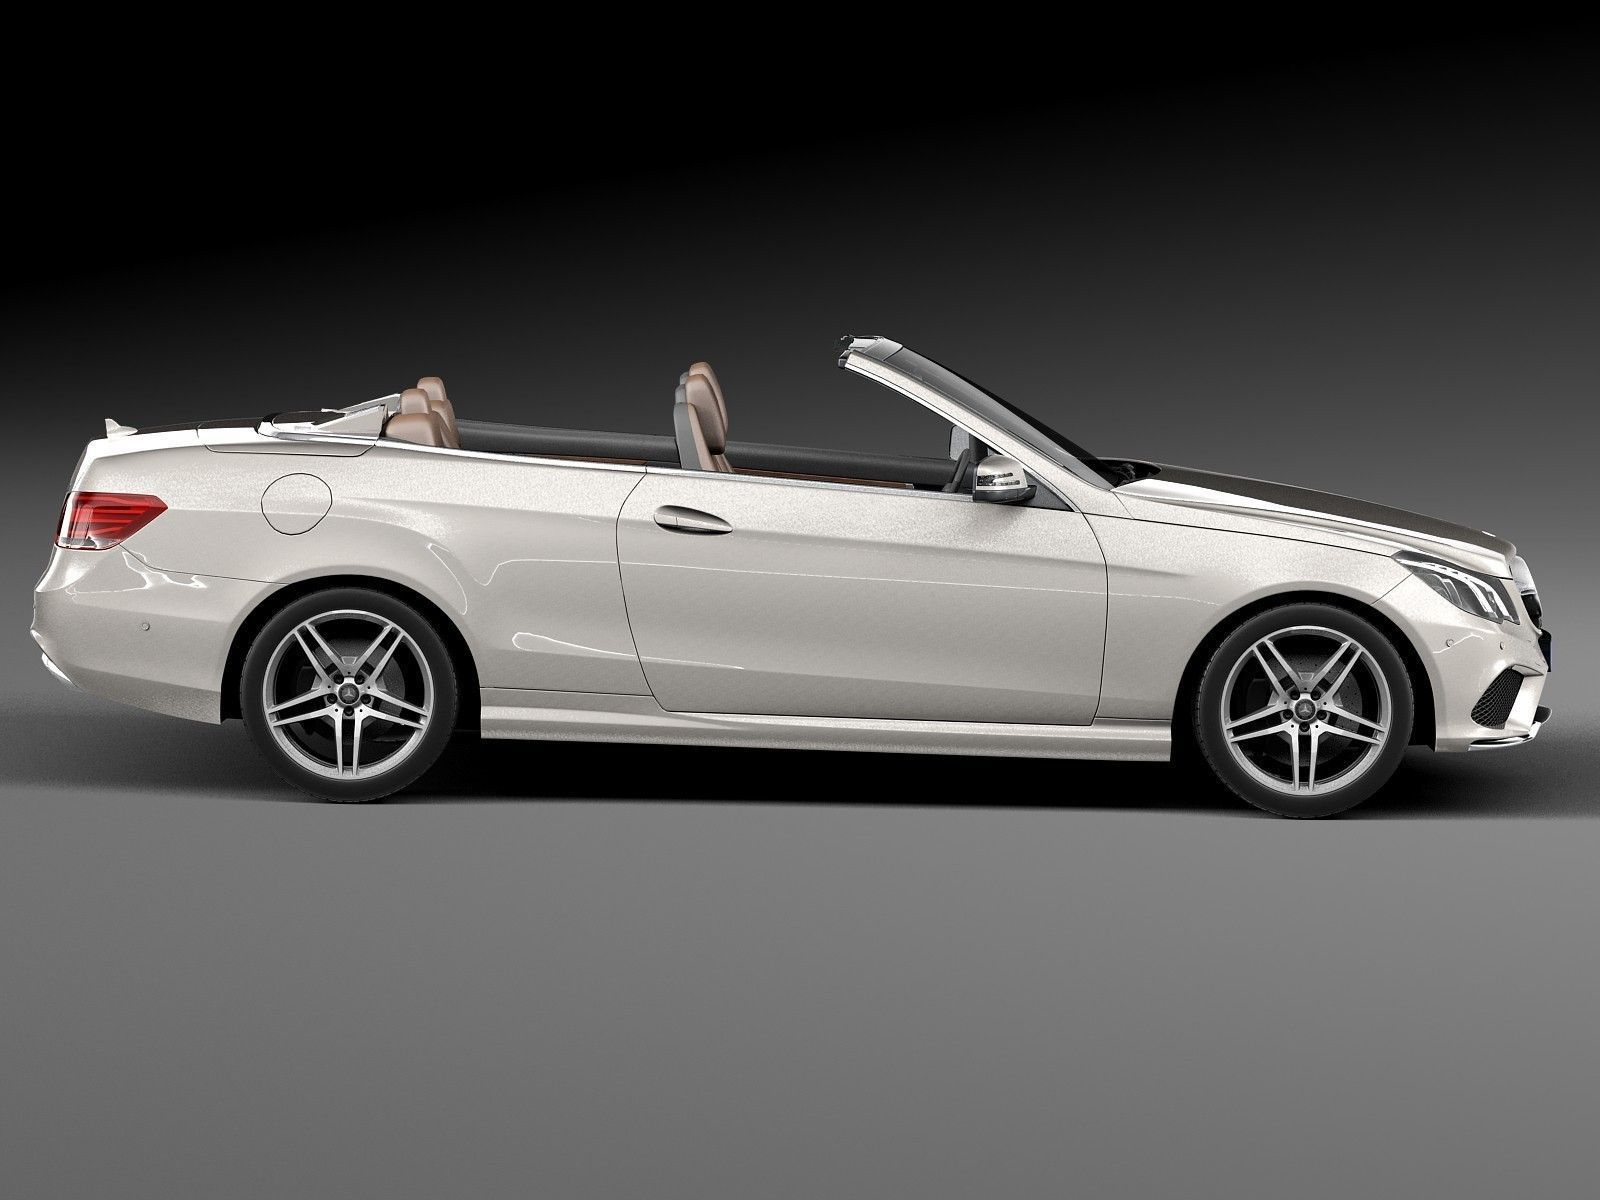 Mercedes benz e class amg convertible 2015 3d model max for Mercedes benz hardtop convertible 2014